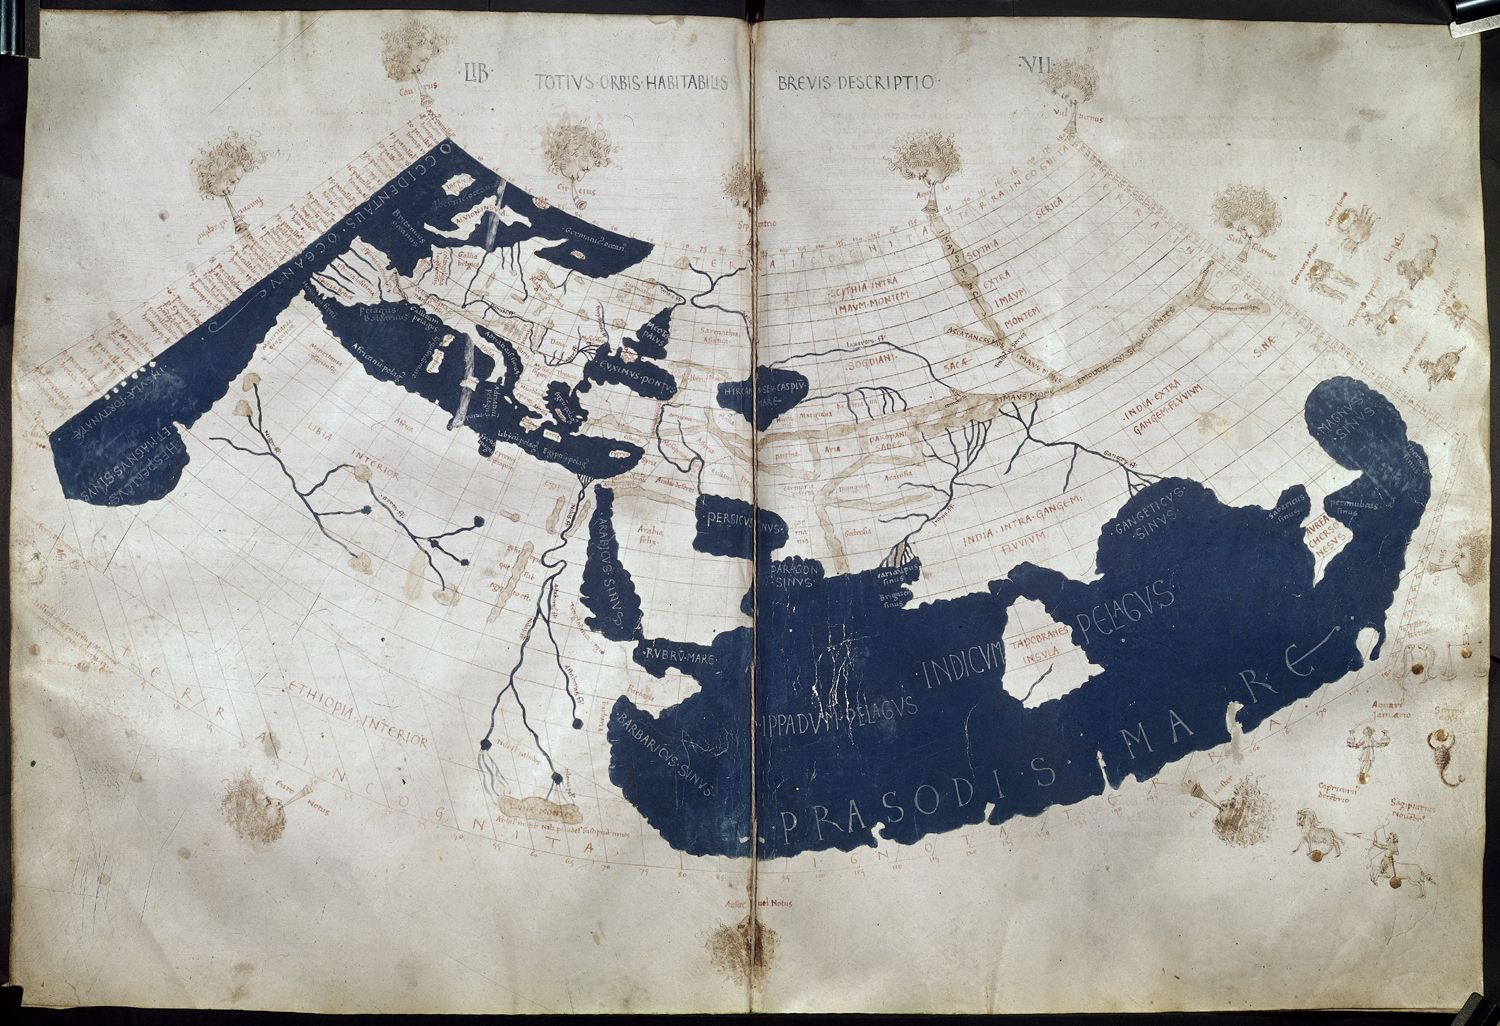 Image of Latin reconstitution of Ptolemy's world map